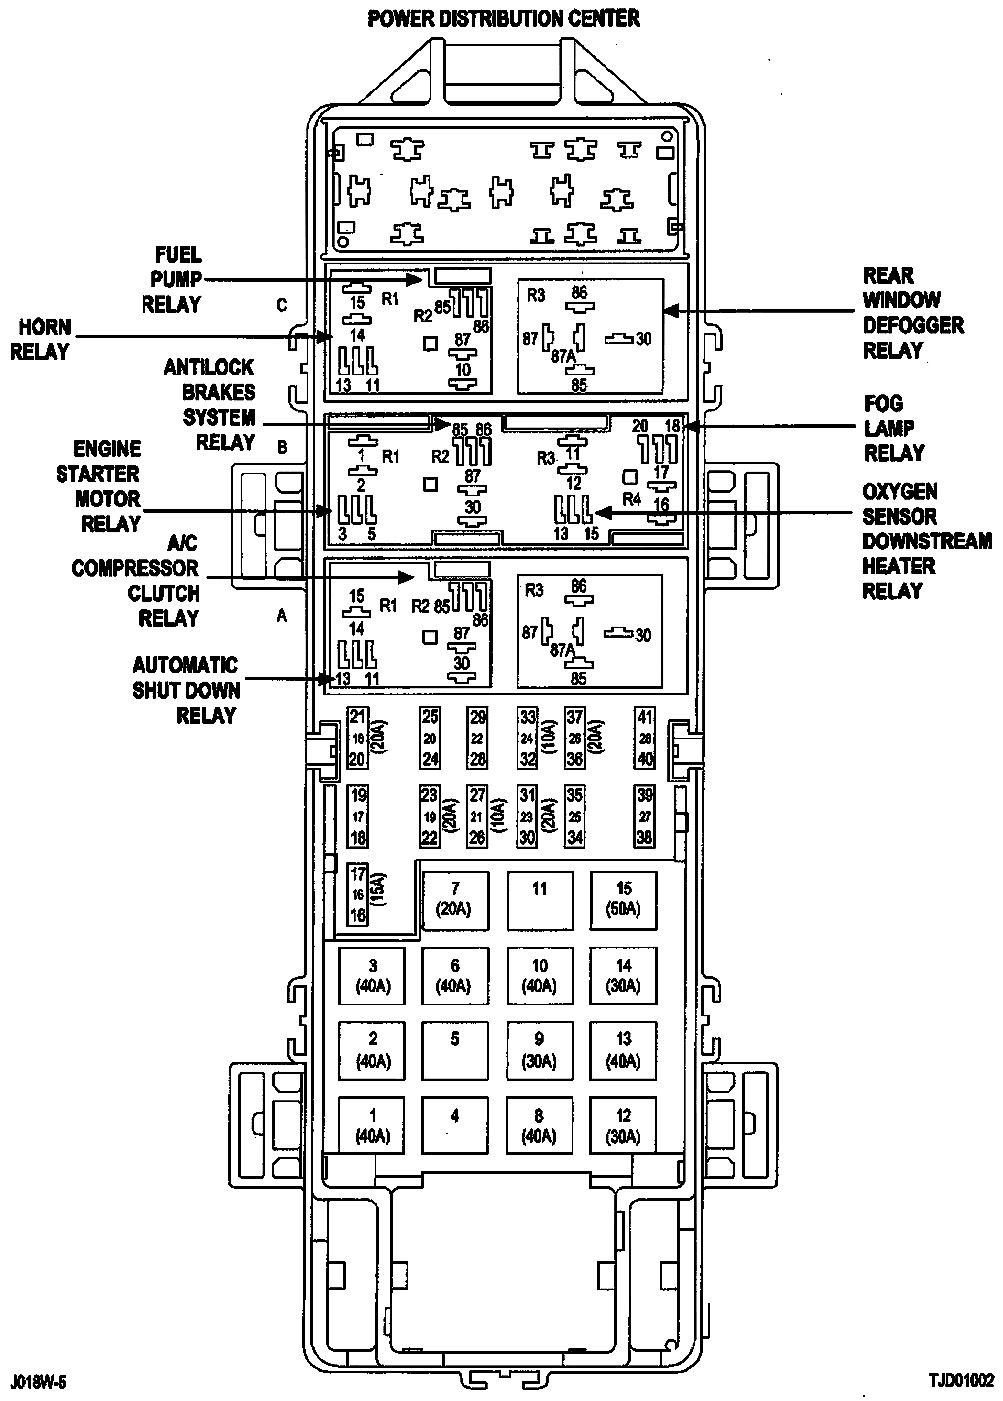 wiring diagram 2003 wrangler tj fuse box wiring diagram data  tj fuse box wiring diagram data